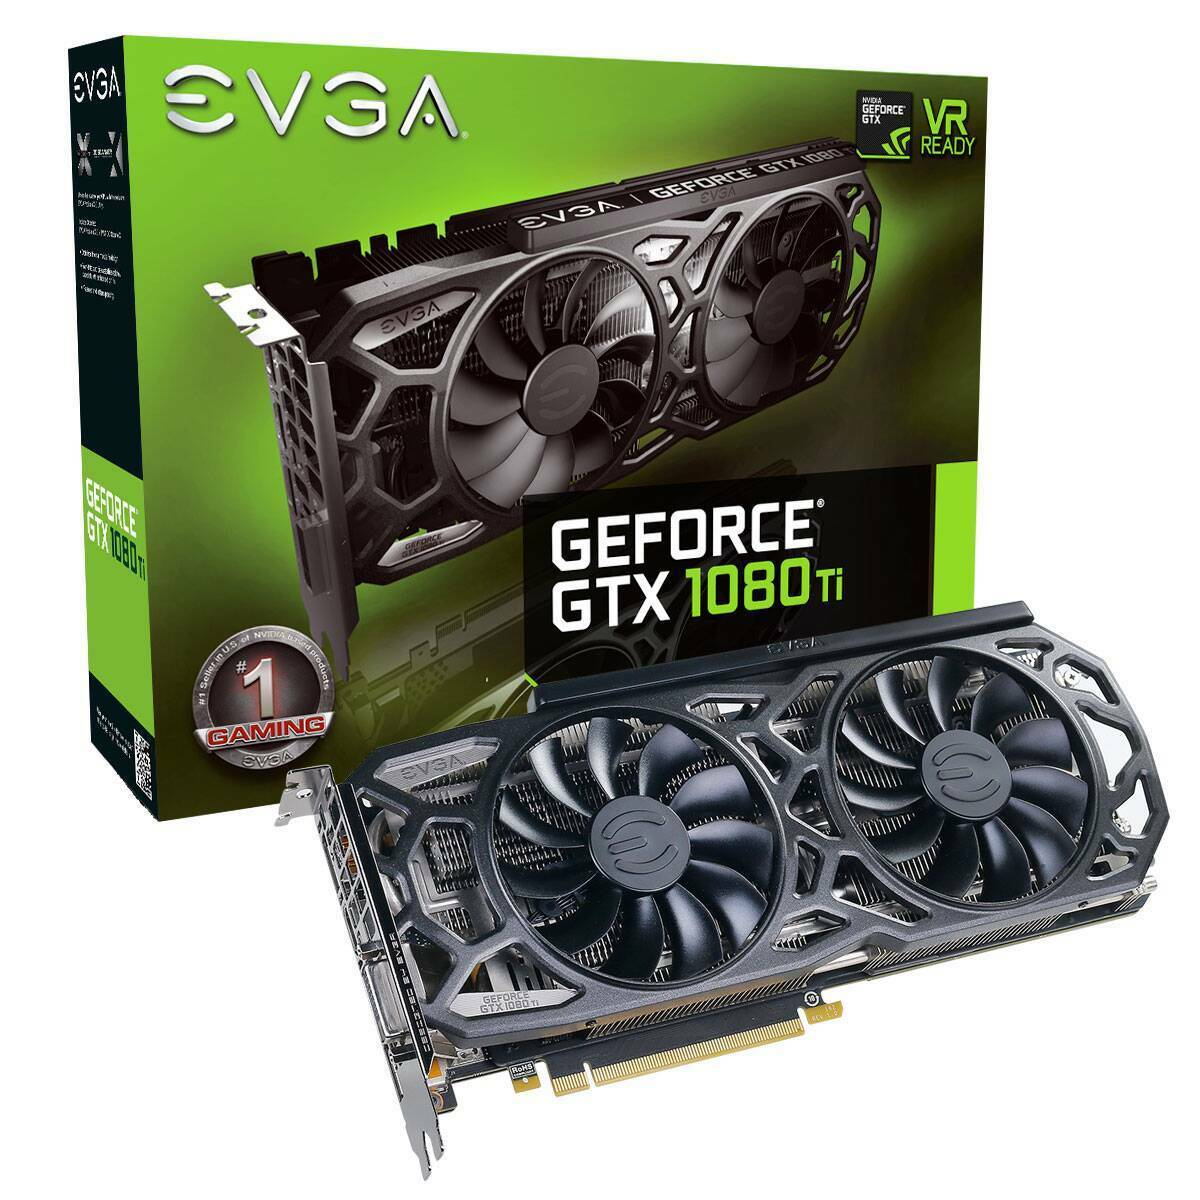 EVGA GeForce GTX 1080 Ti Black Edition GAMING, 11G-P4-6391-KR